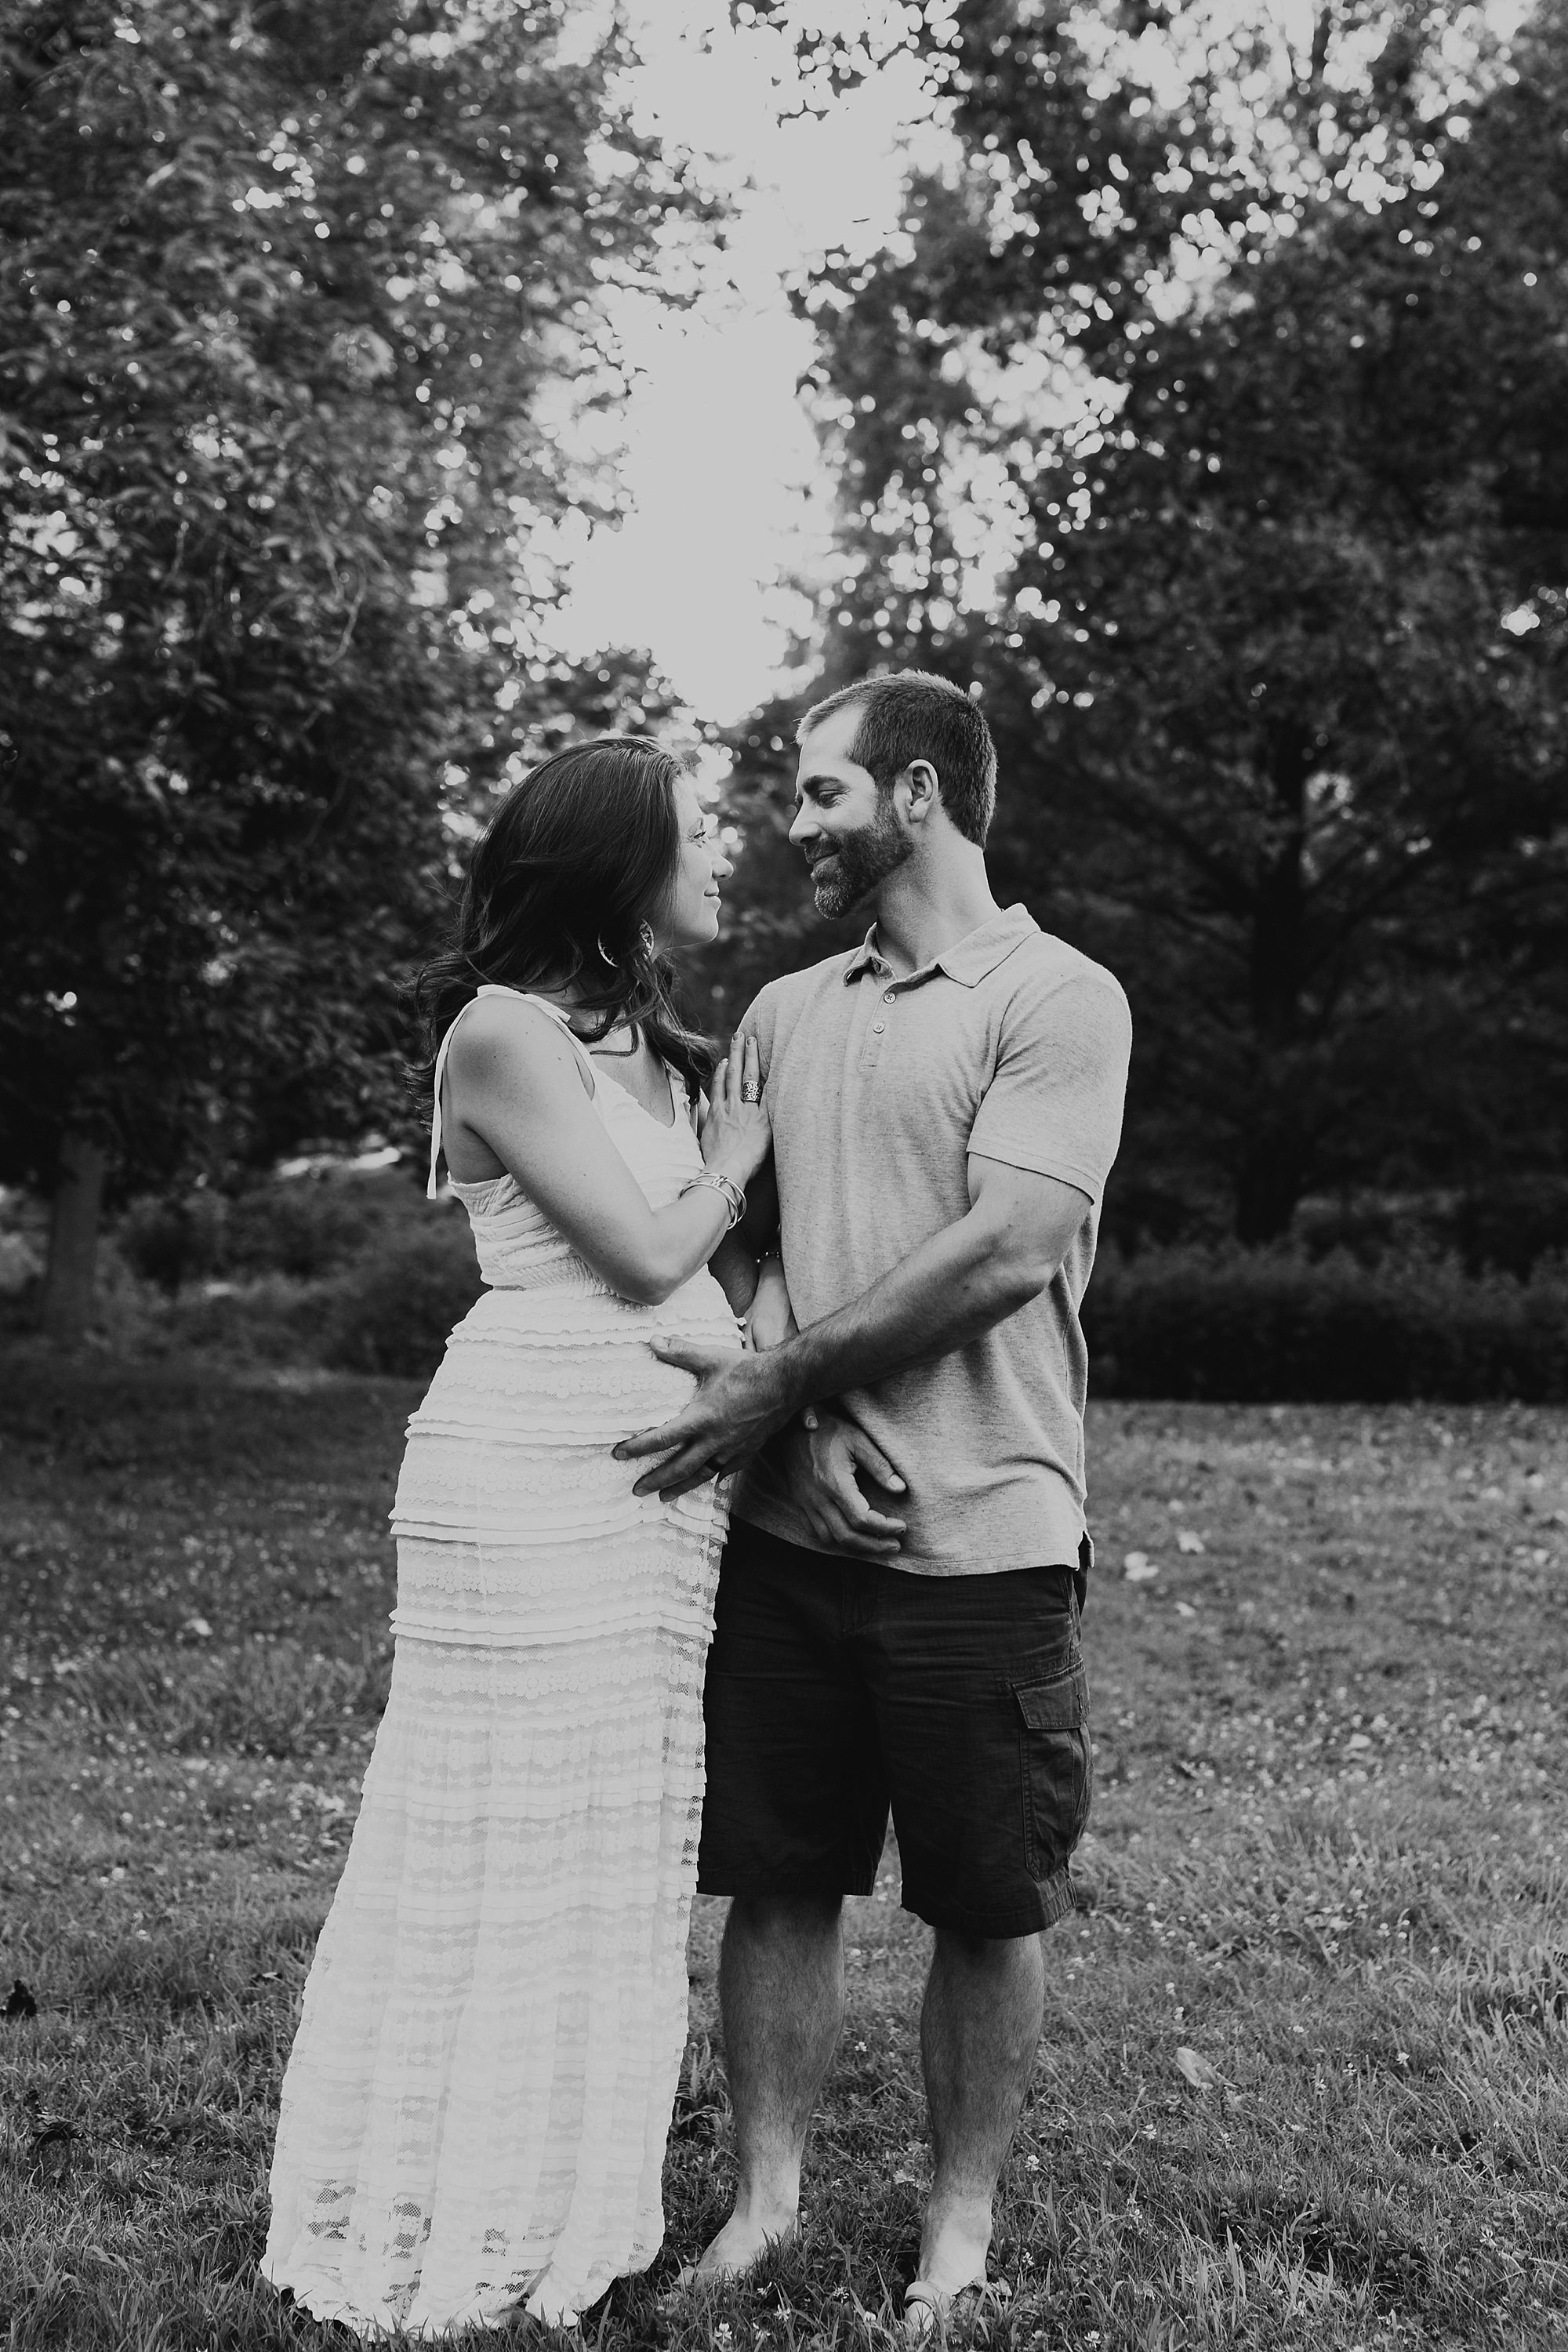 Joe_Mac_Creative_Maternity_West_Chester_Wedding_Photography_Philly_Best_Philadlephia__0172.jpg